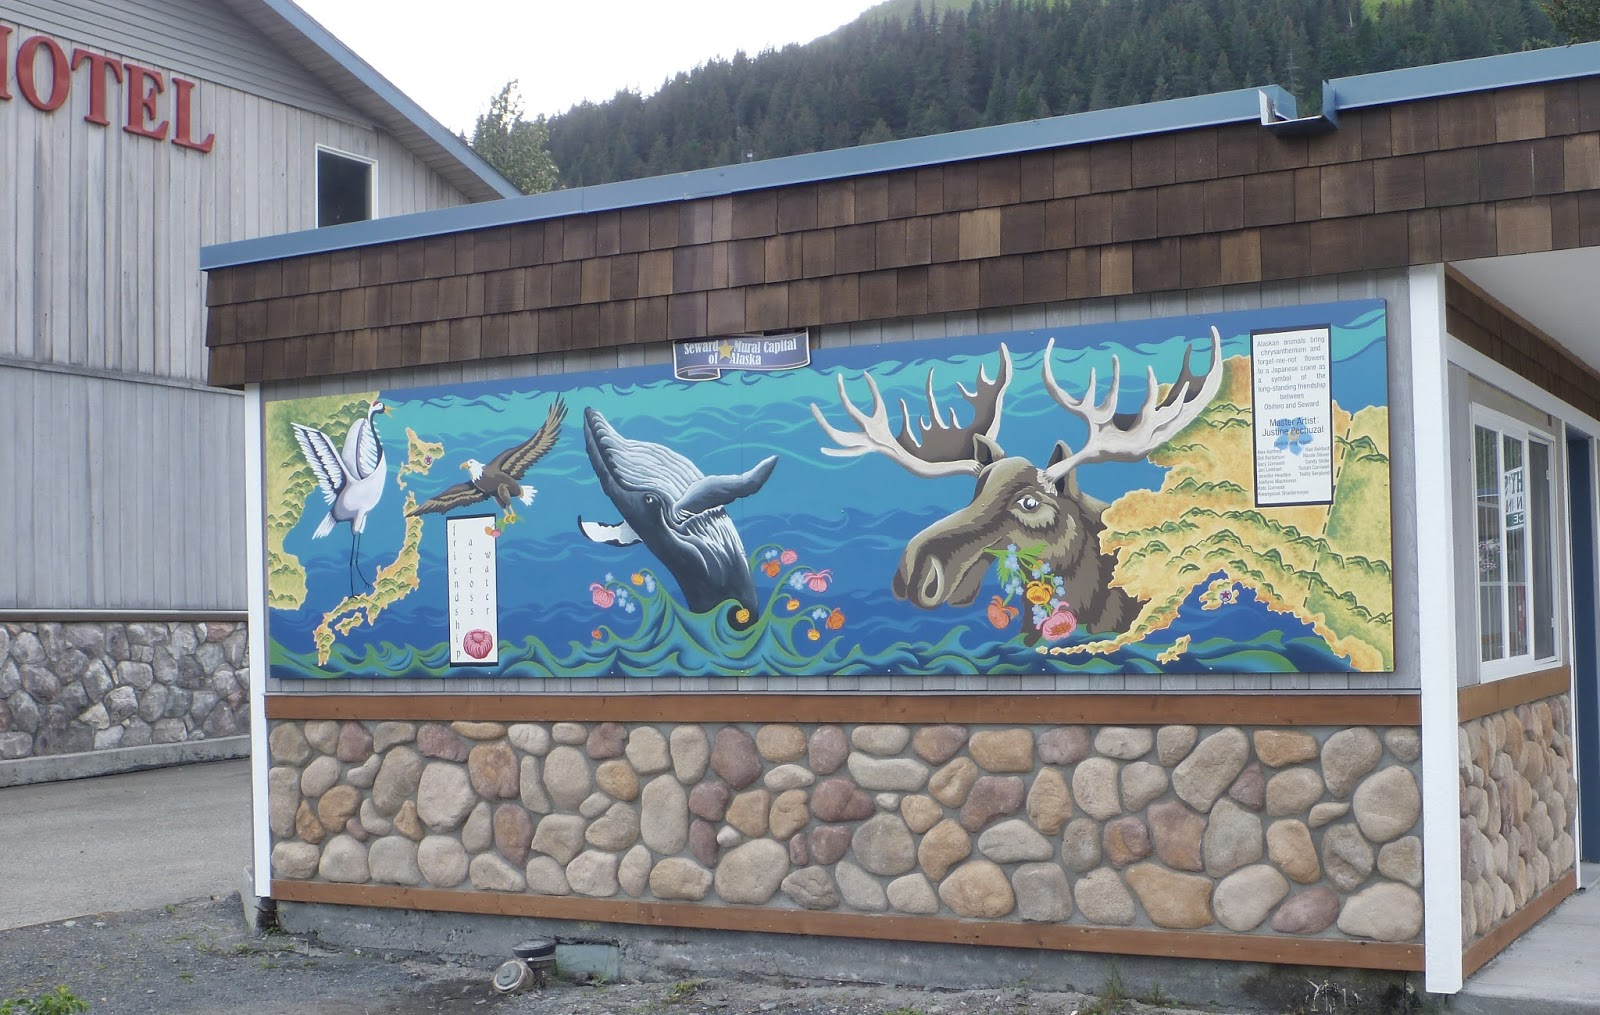 Alaska Natives, #Alaska #mural #art #publicart #Seward 2013